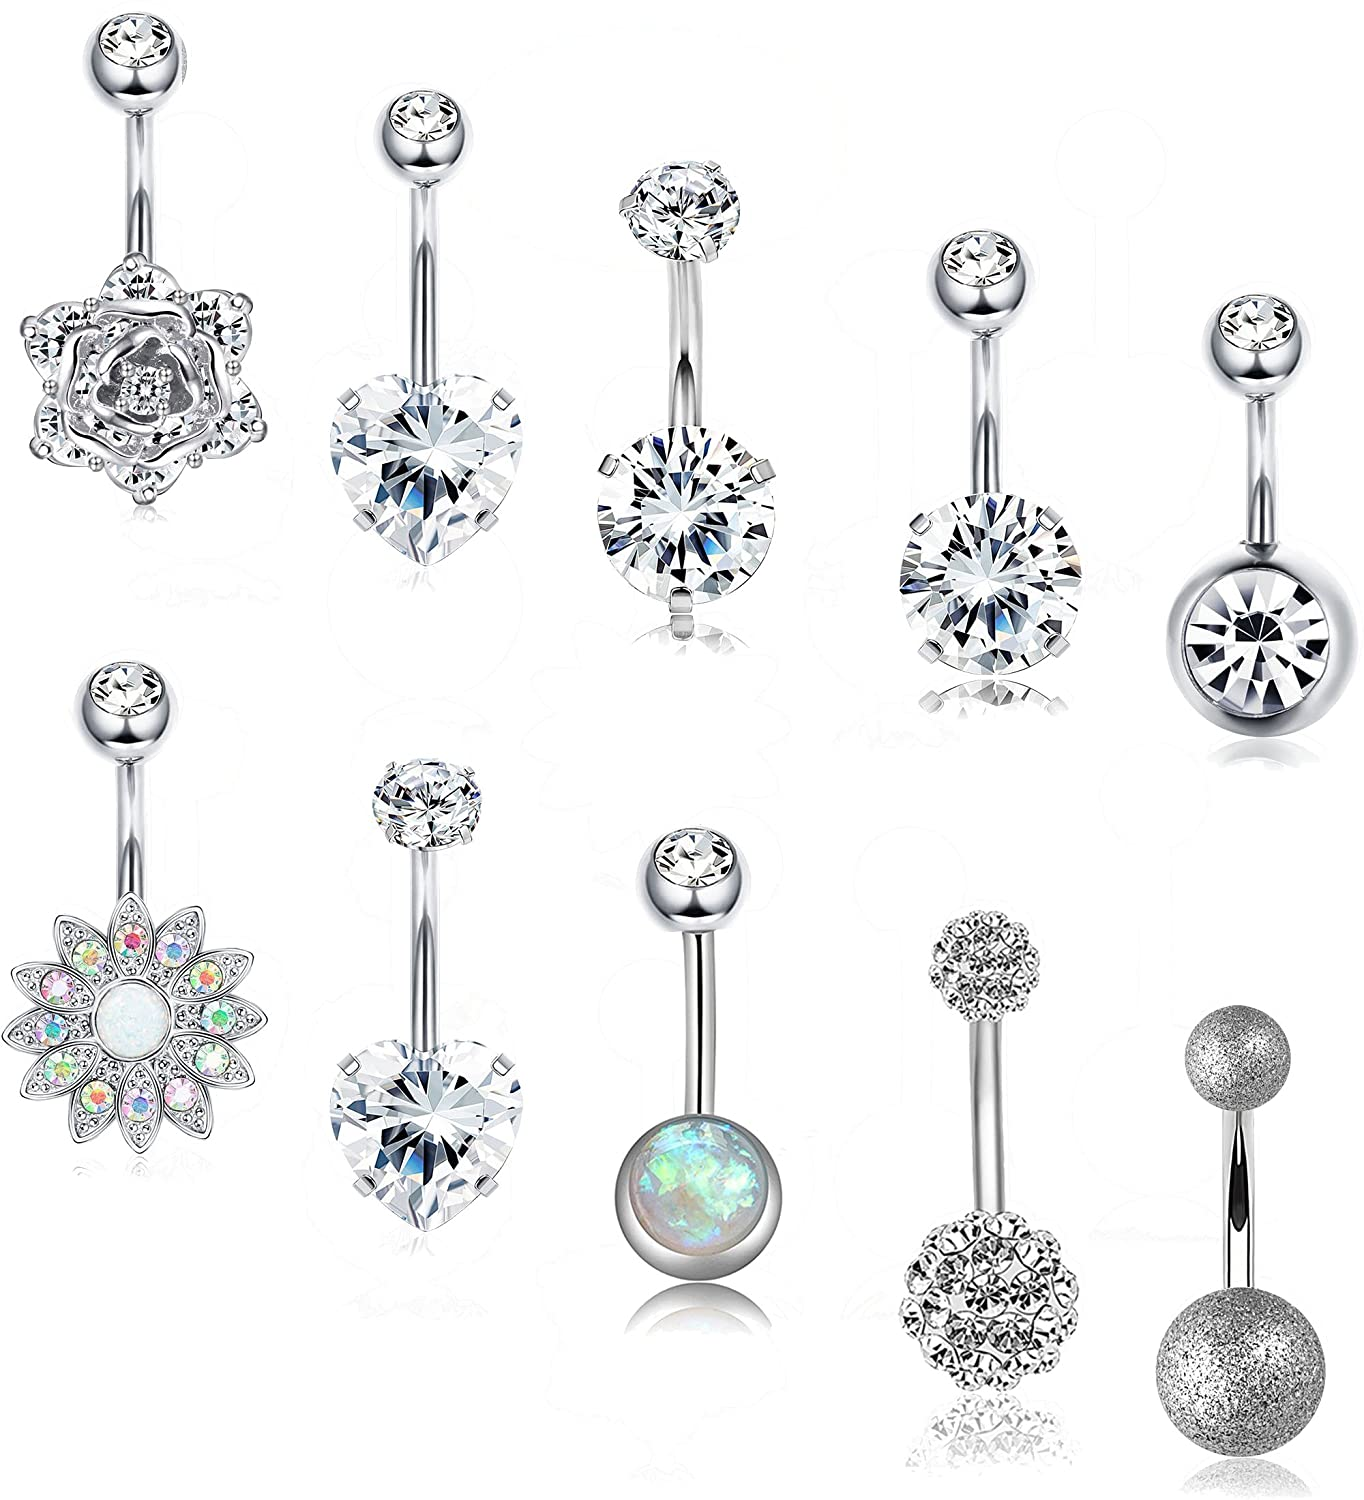 Lolias 8 21 Pcs 14g Belly Button Rings For Women Girls Navel Barbell Rings Body Piercing Jewelry